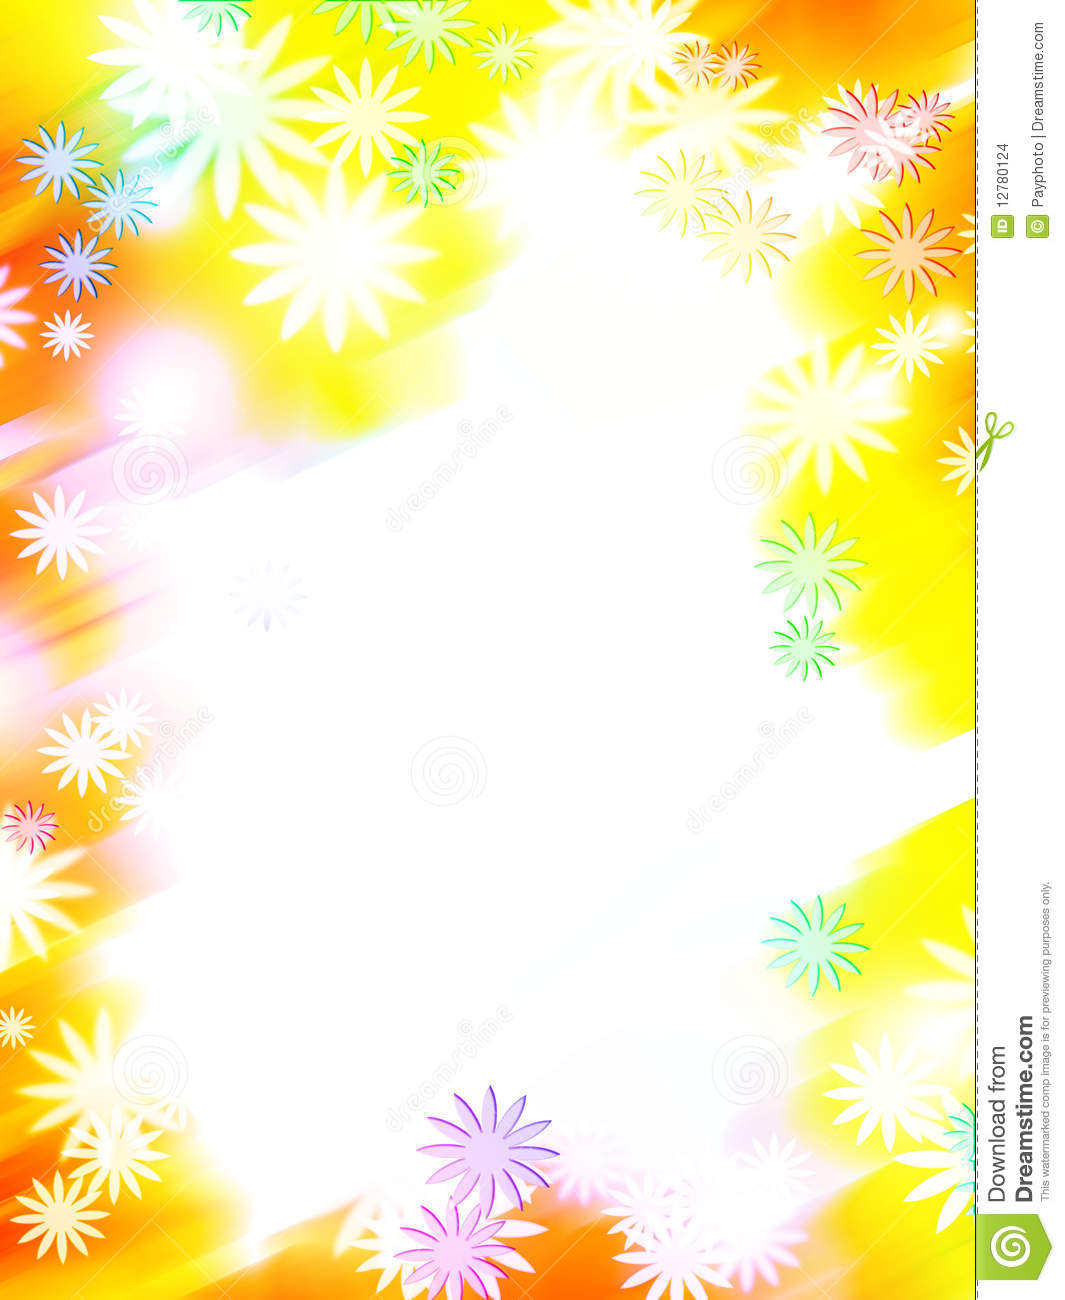 Abstract Colorful Flower Border Stock Illustration Image 12780124 Colorful Page Border